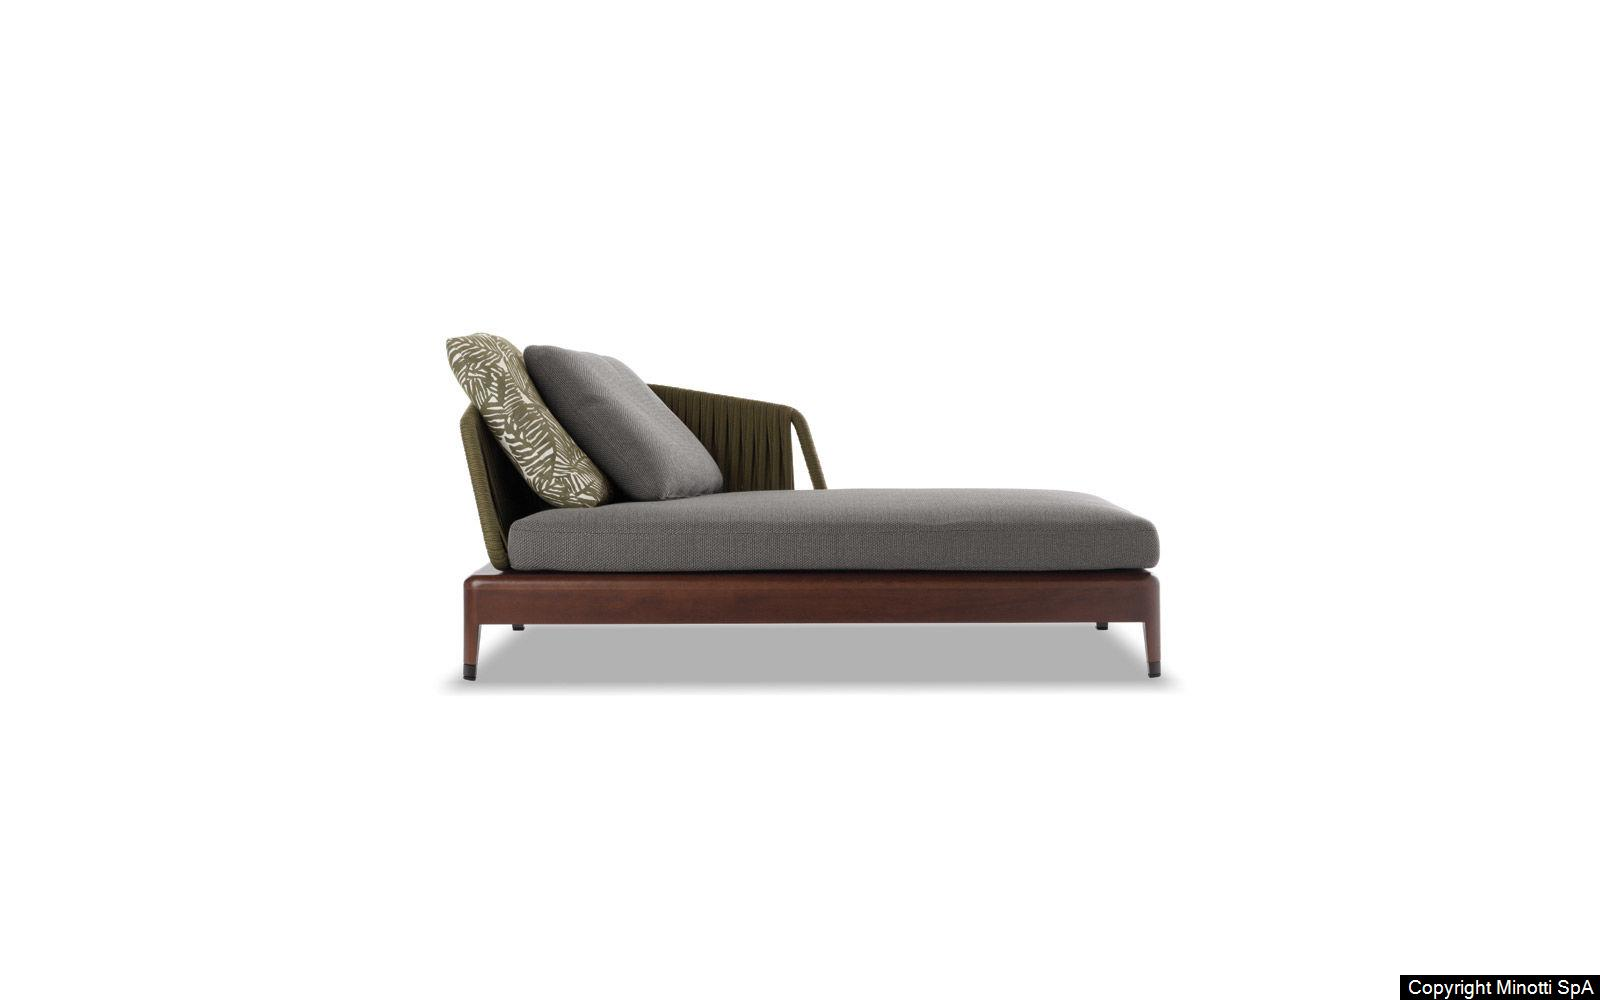 z_indiana-chaise-scont